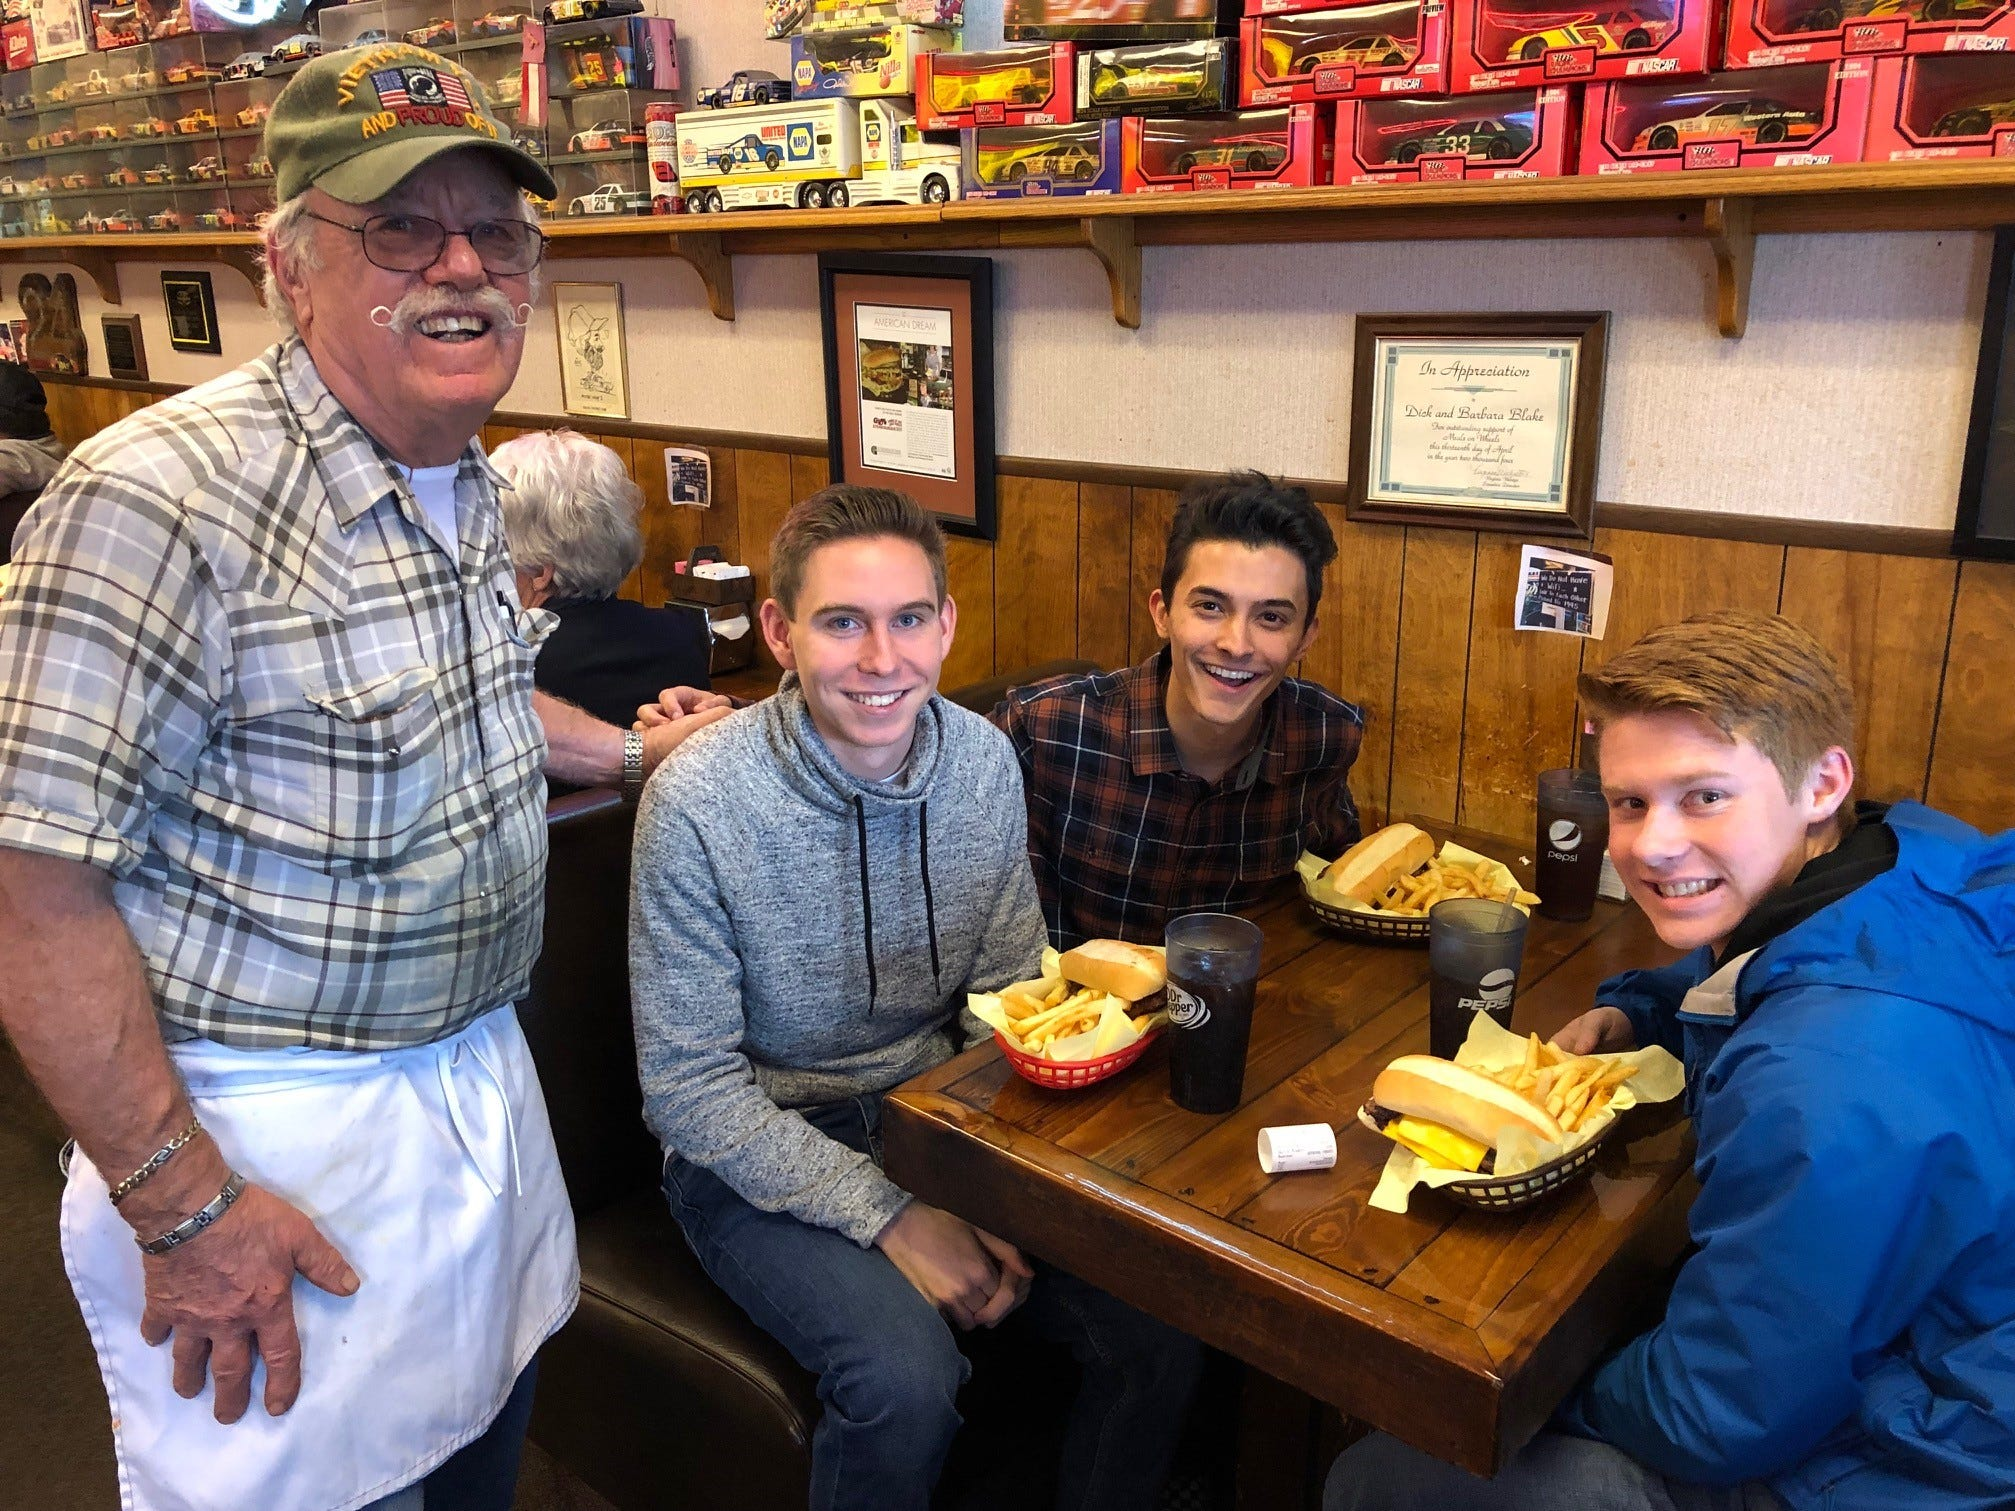 Owner Dick Blake, left, Nathan Fisher, Arshaad Hakmiller and Gary Winthorpe at Giff's Steakburger in east Redding.